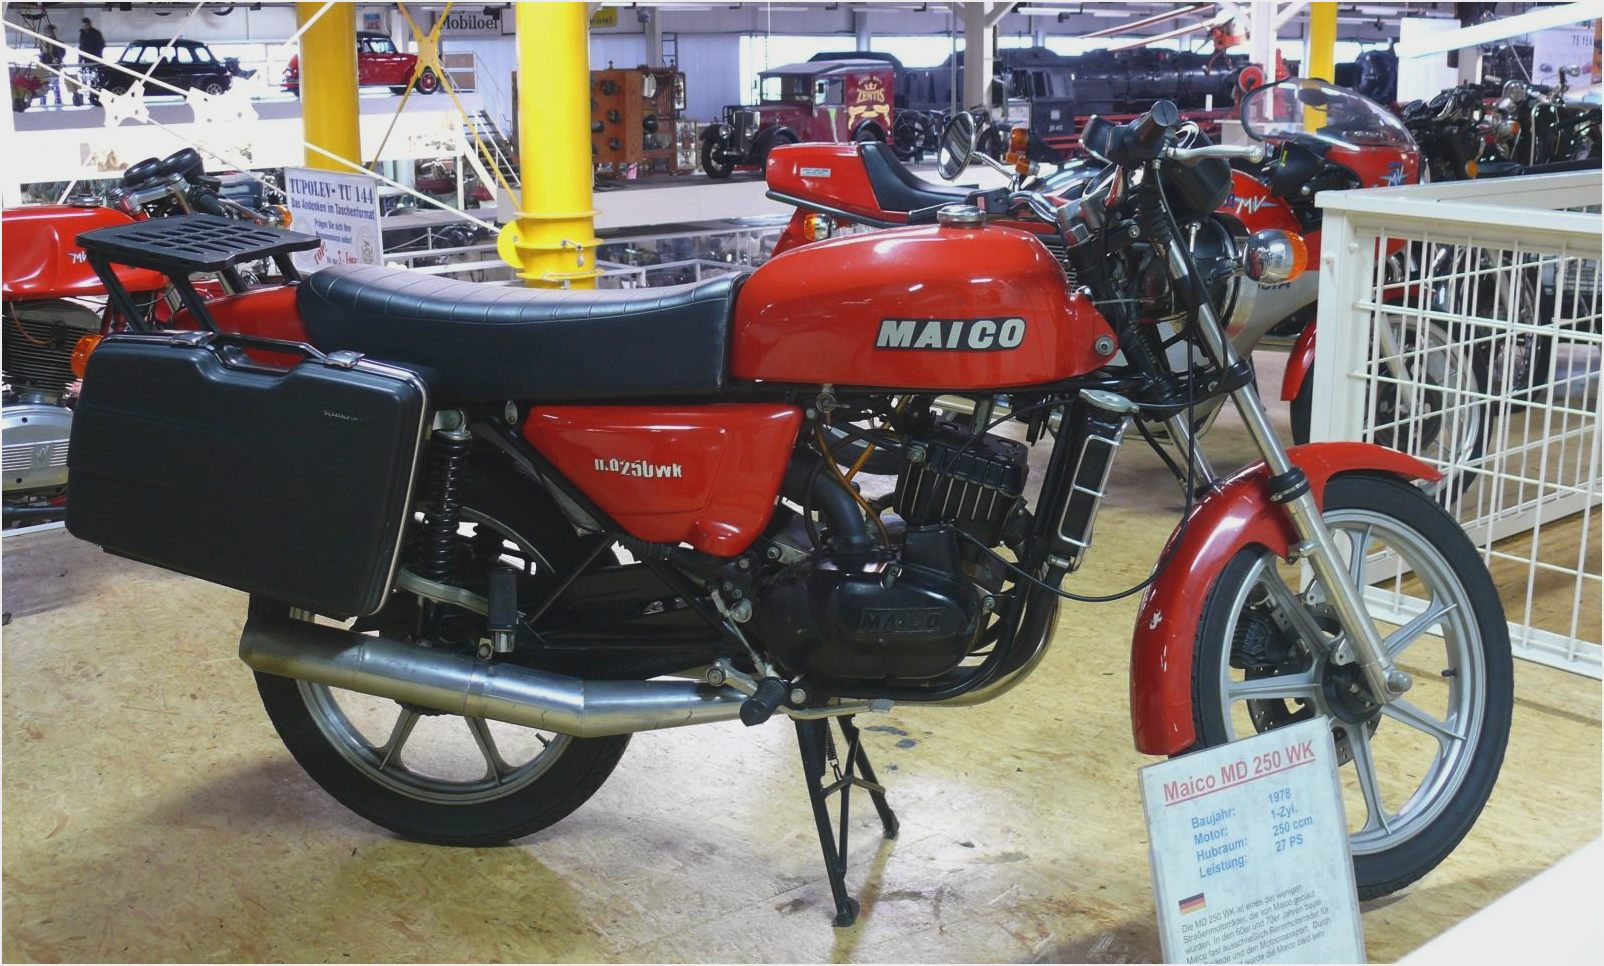 Maico MD 250 WK 1978 images #103085